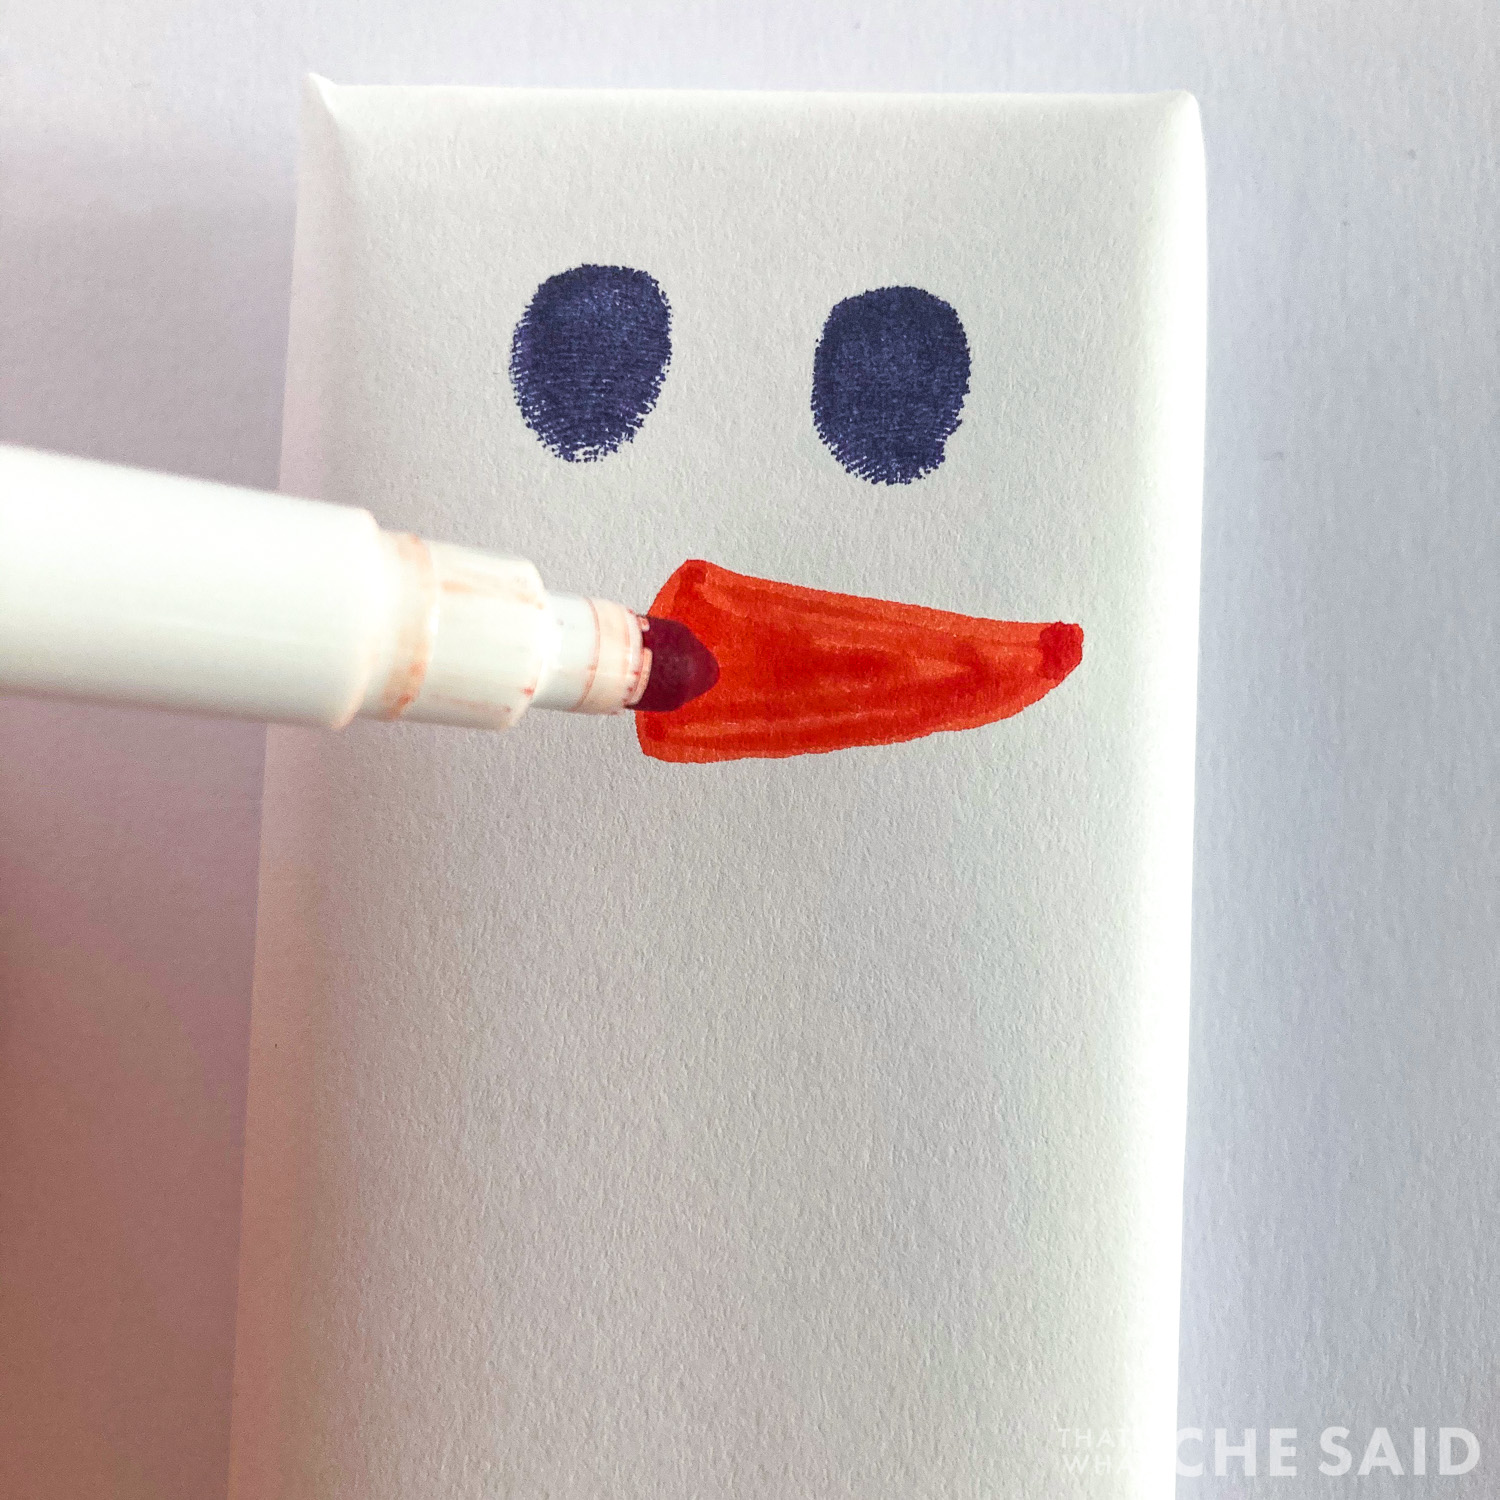 drawing the carrot nose with orange marker